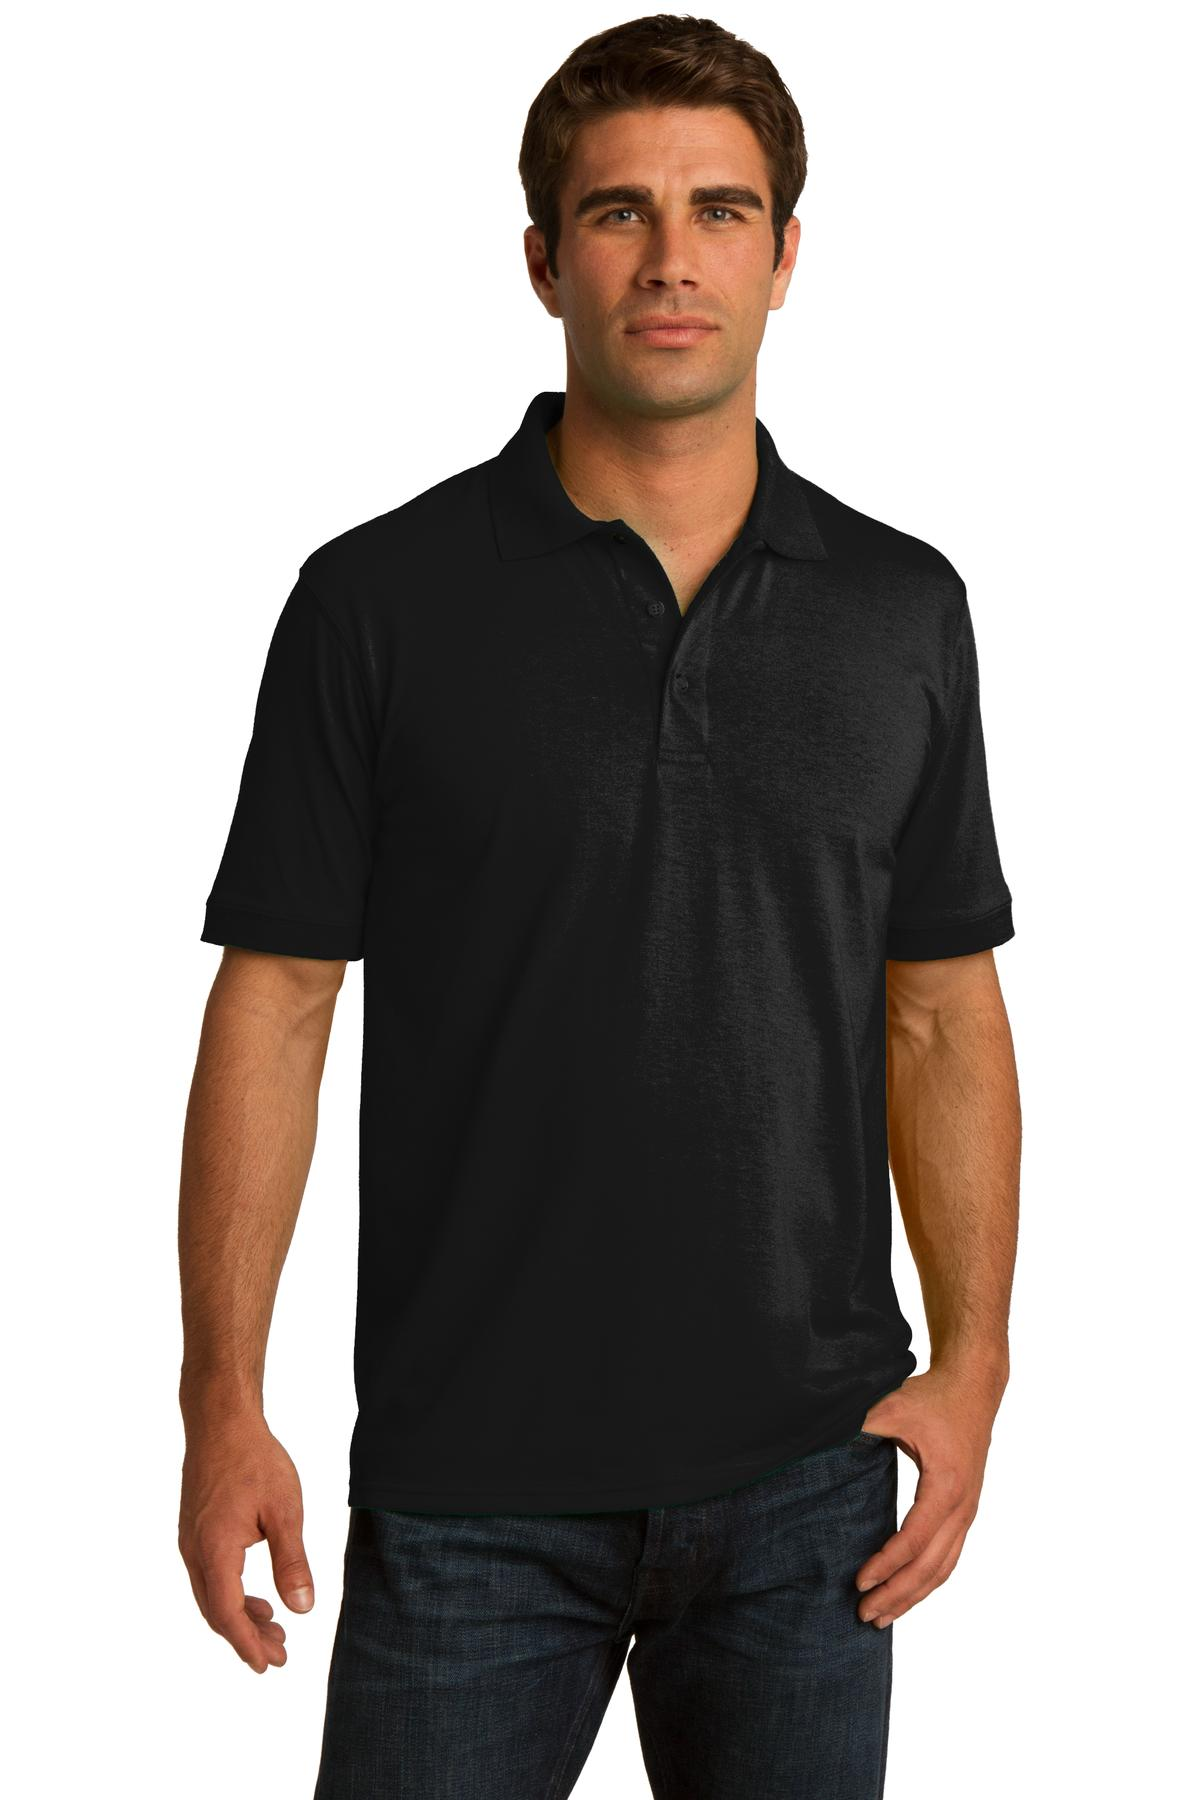 Port and Company Tall Core Blend Jersey Knit Polo. KP55T